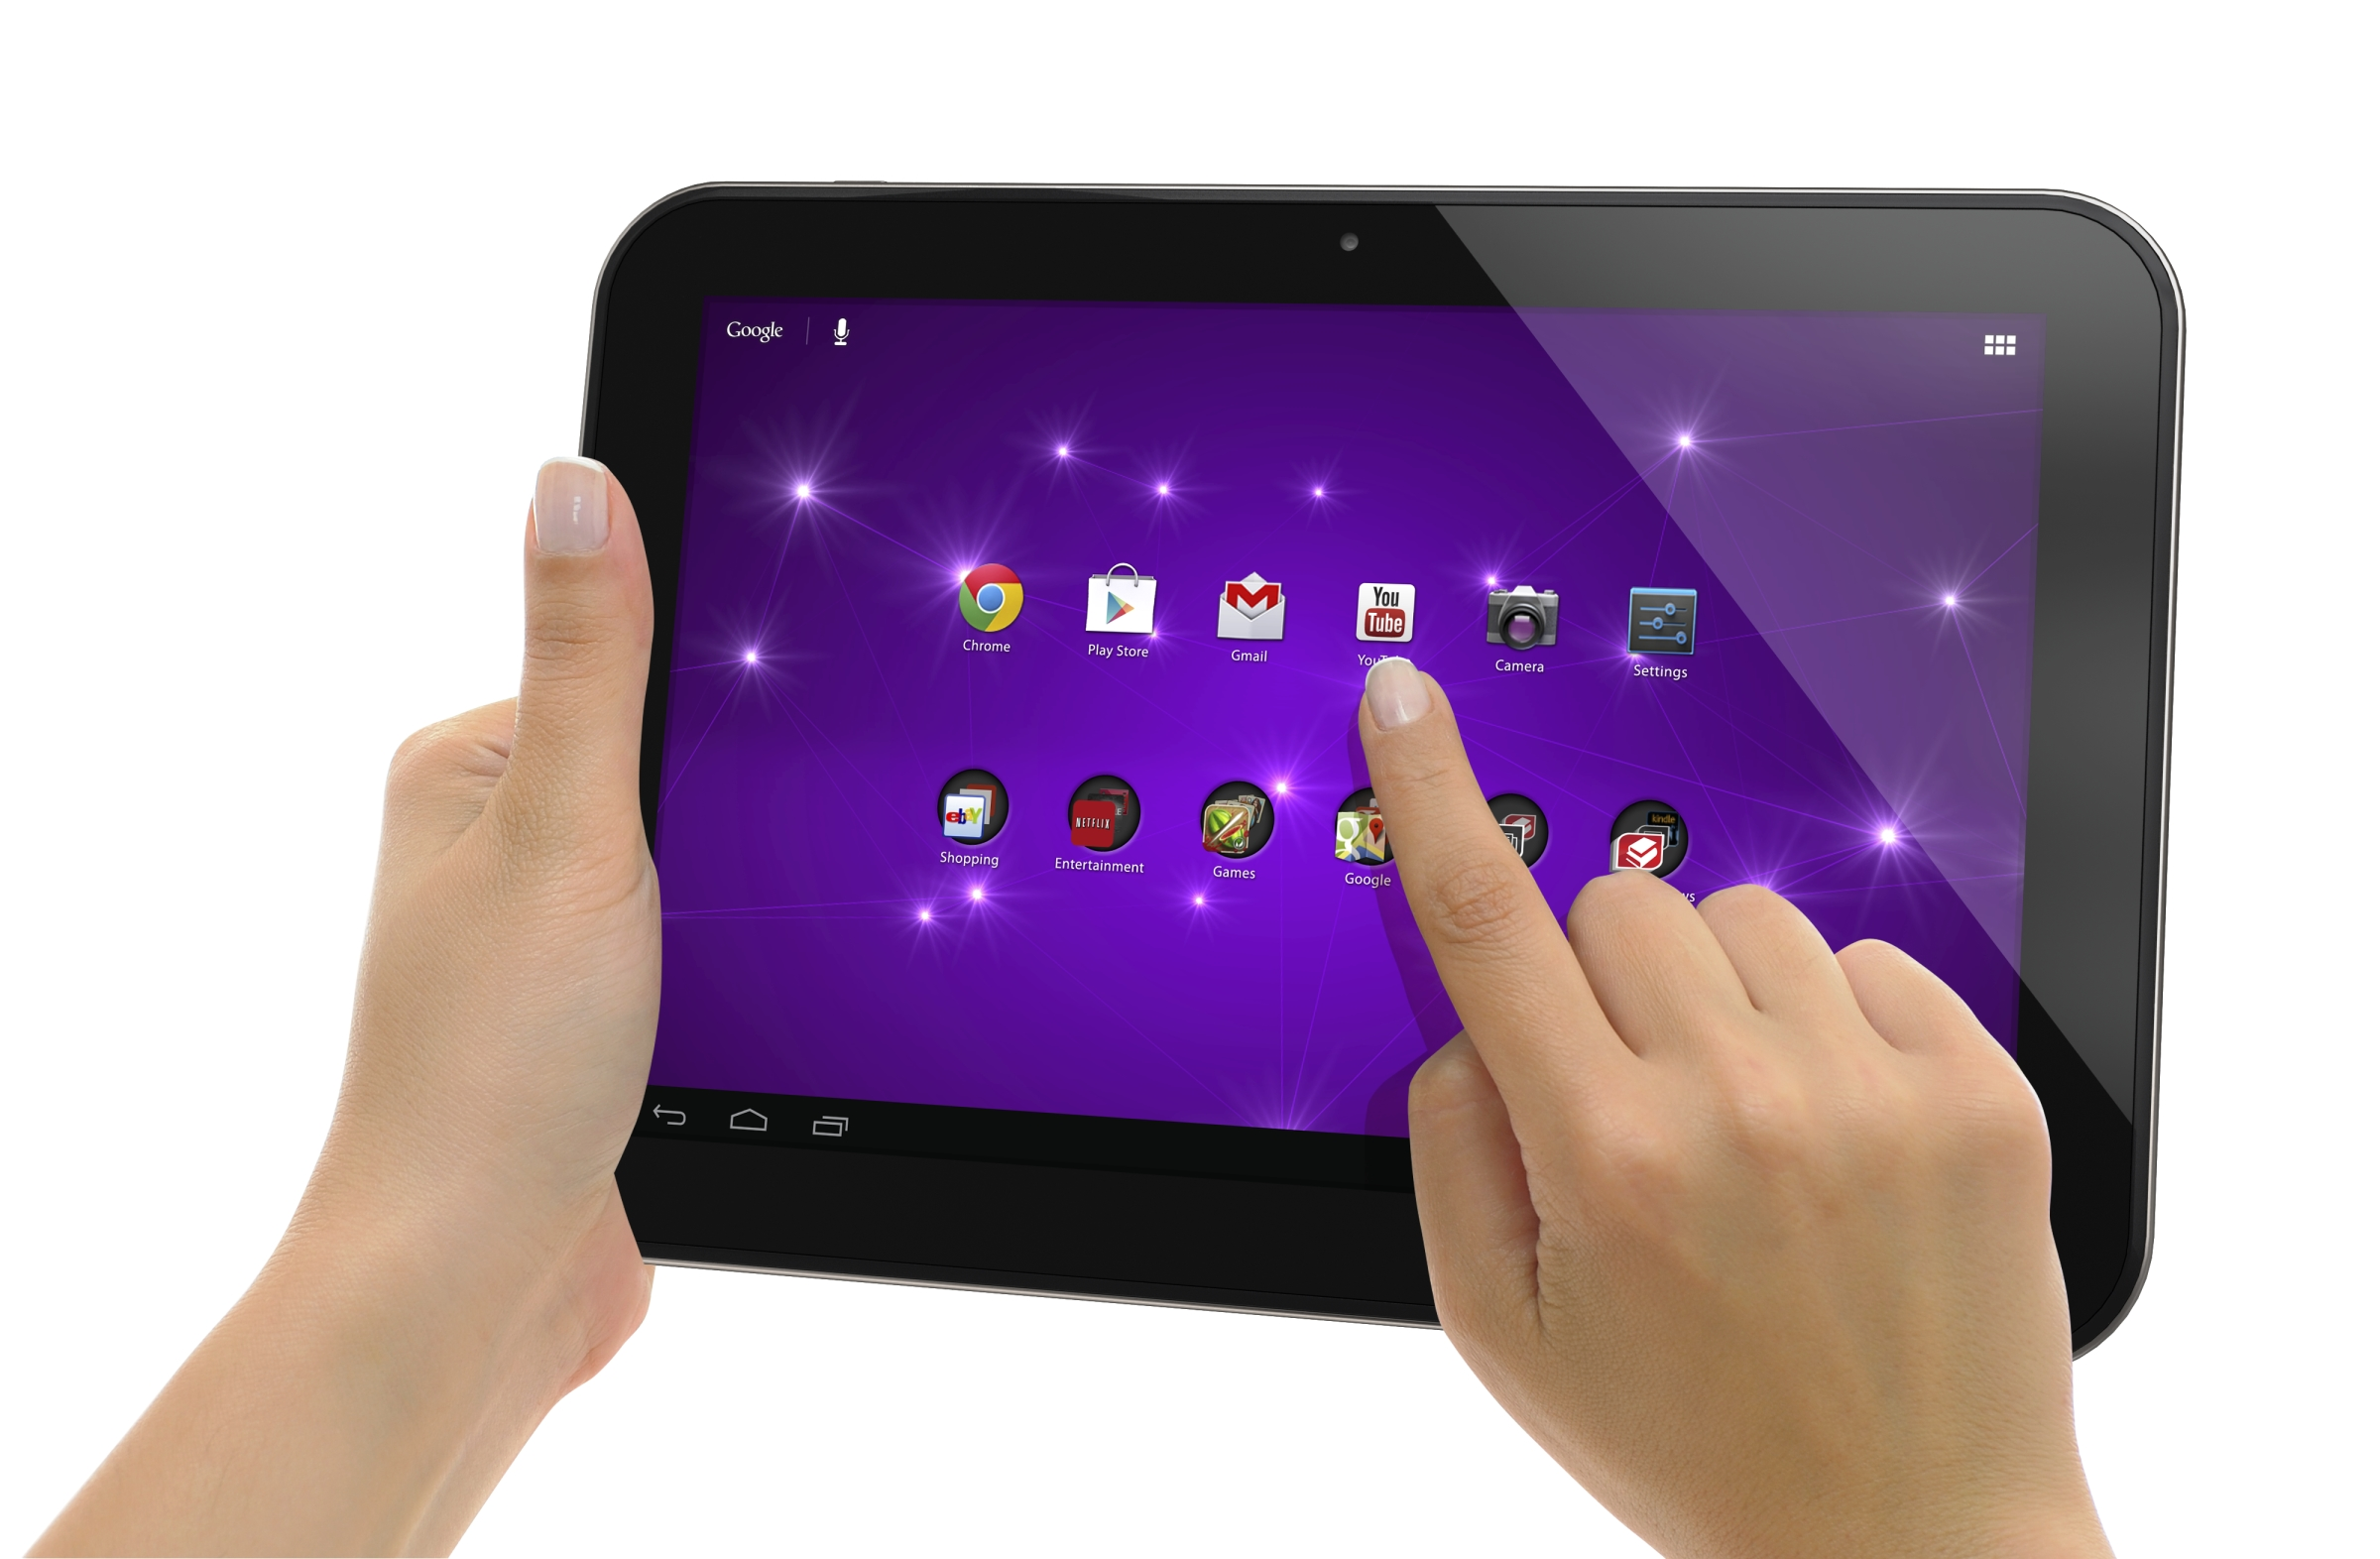 Toshiba Excite 10 SE - 10-calowy tablet z Android Jelly Bean